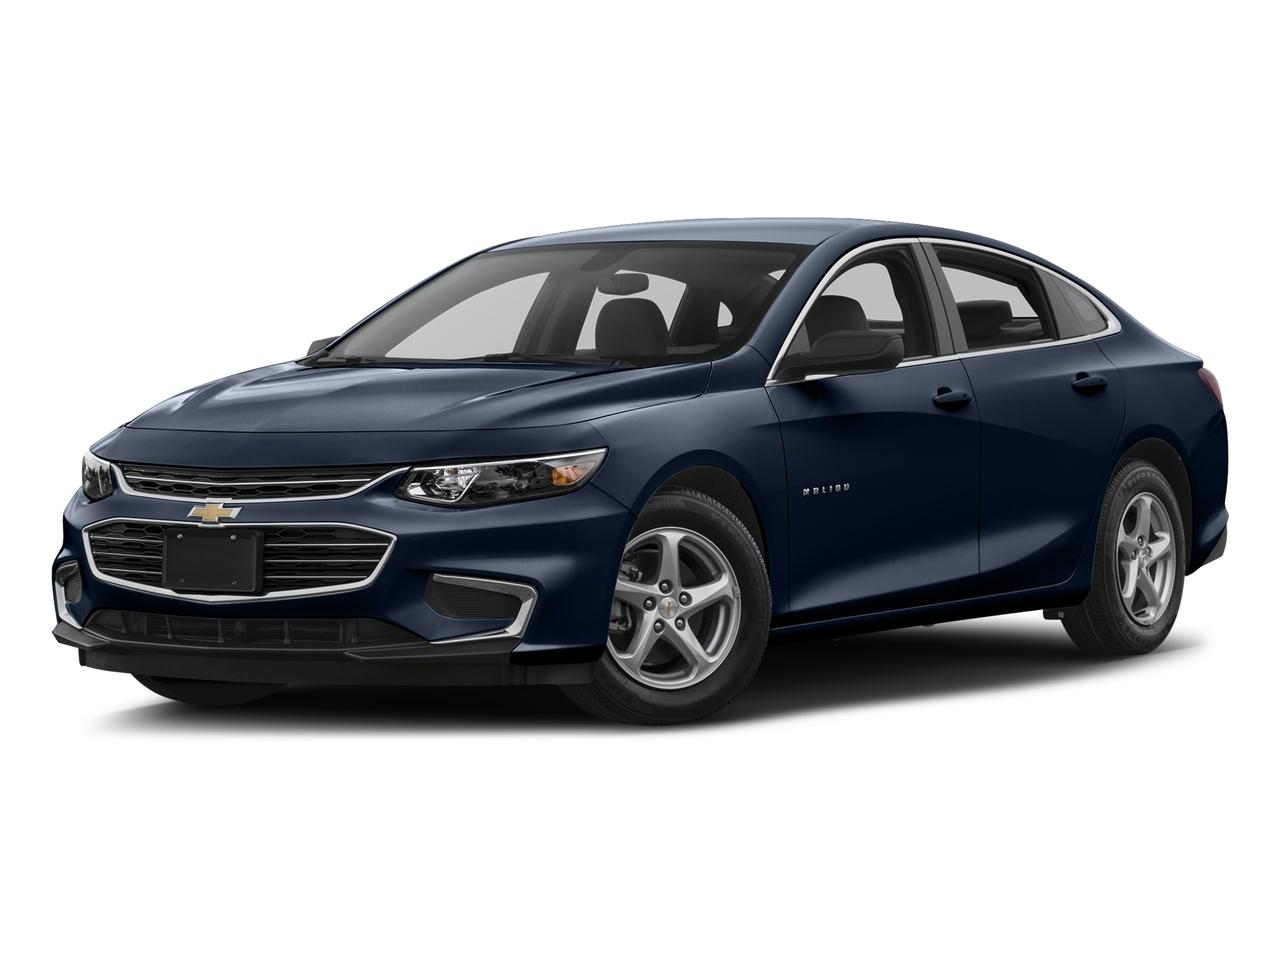 2017 Chevrolet Malibu Vehicle Photo in Hamden, CT 06517